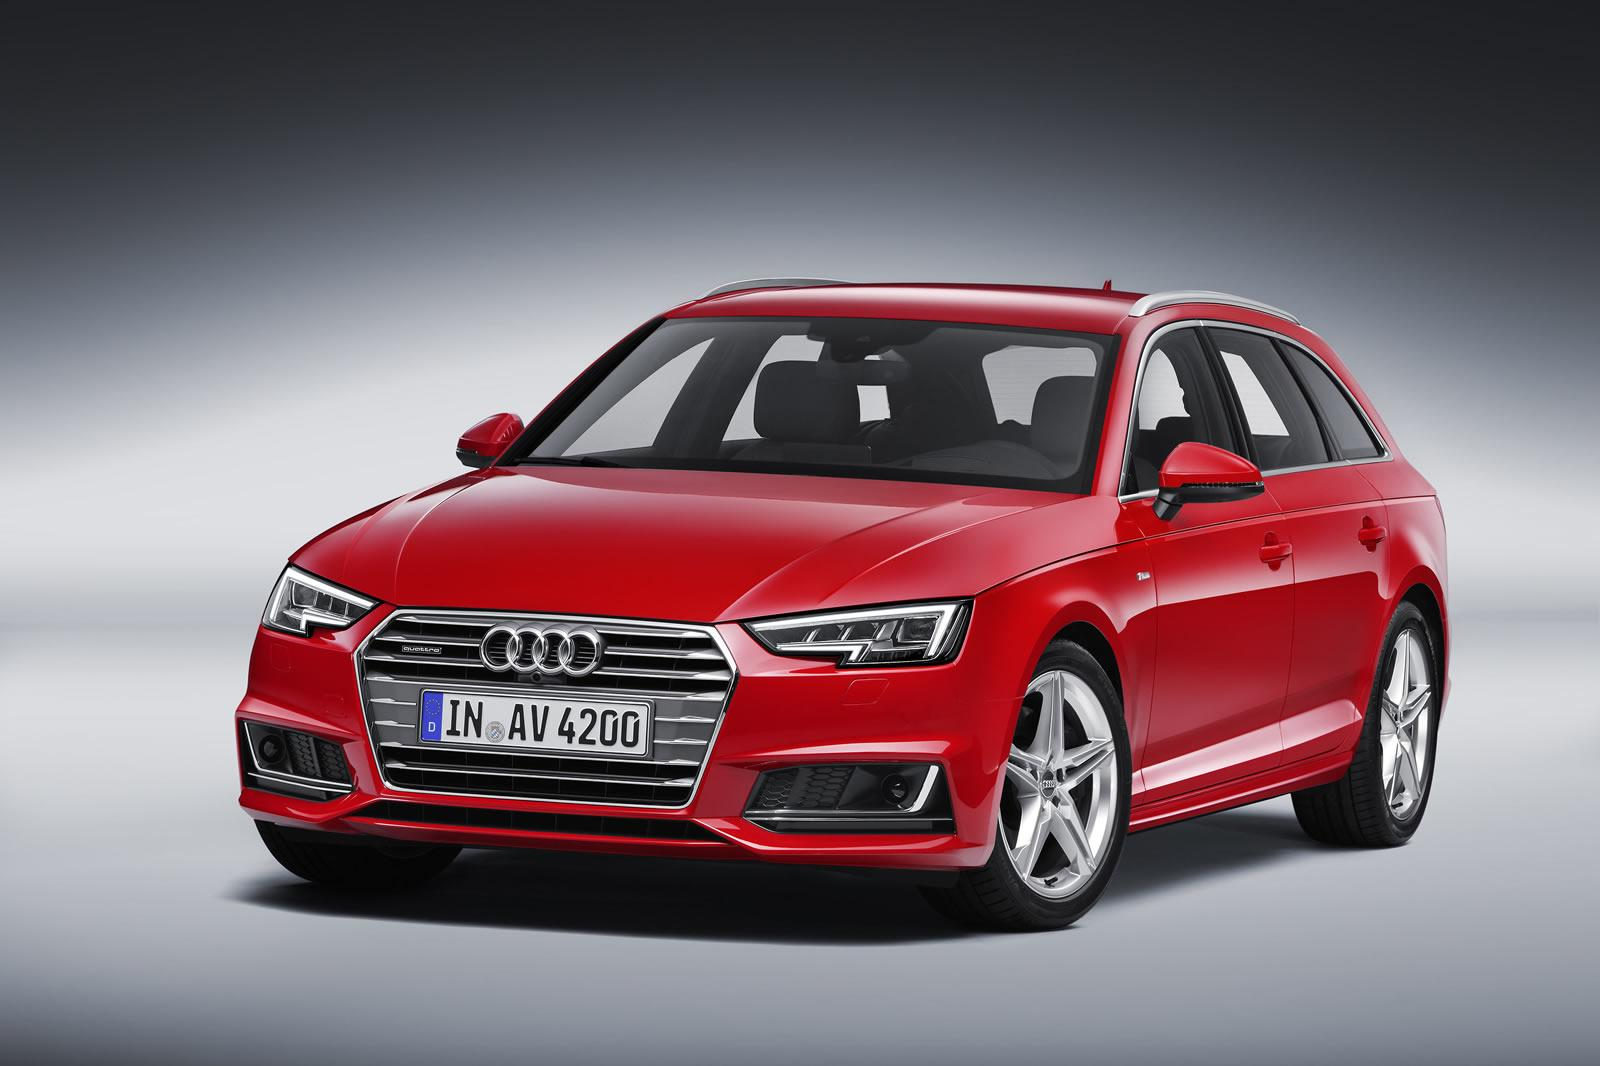 2016 audi a4 avant b9 photos videos and details. Black Bedroom Furniture Sets. Home Design Ideas